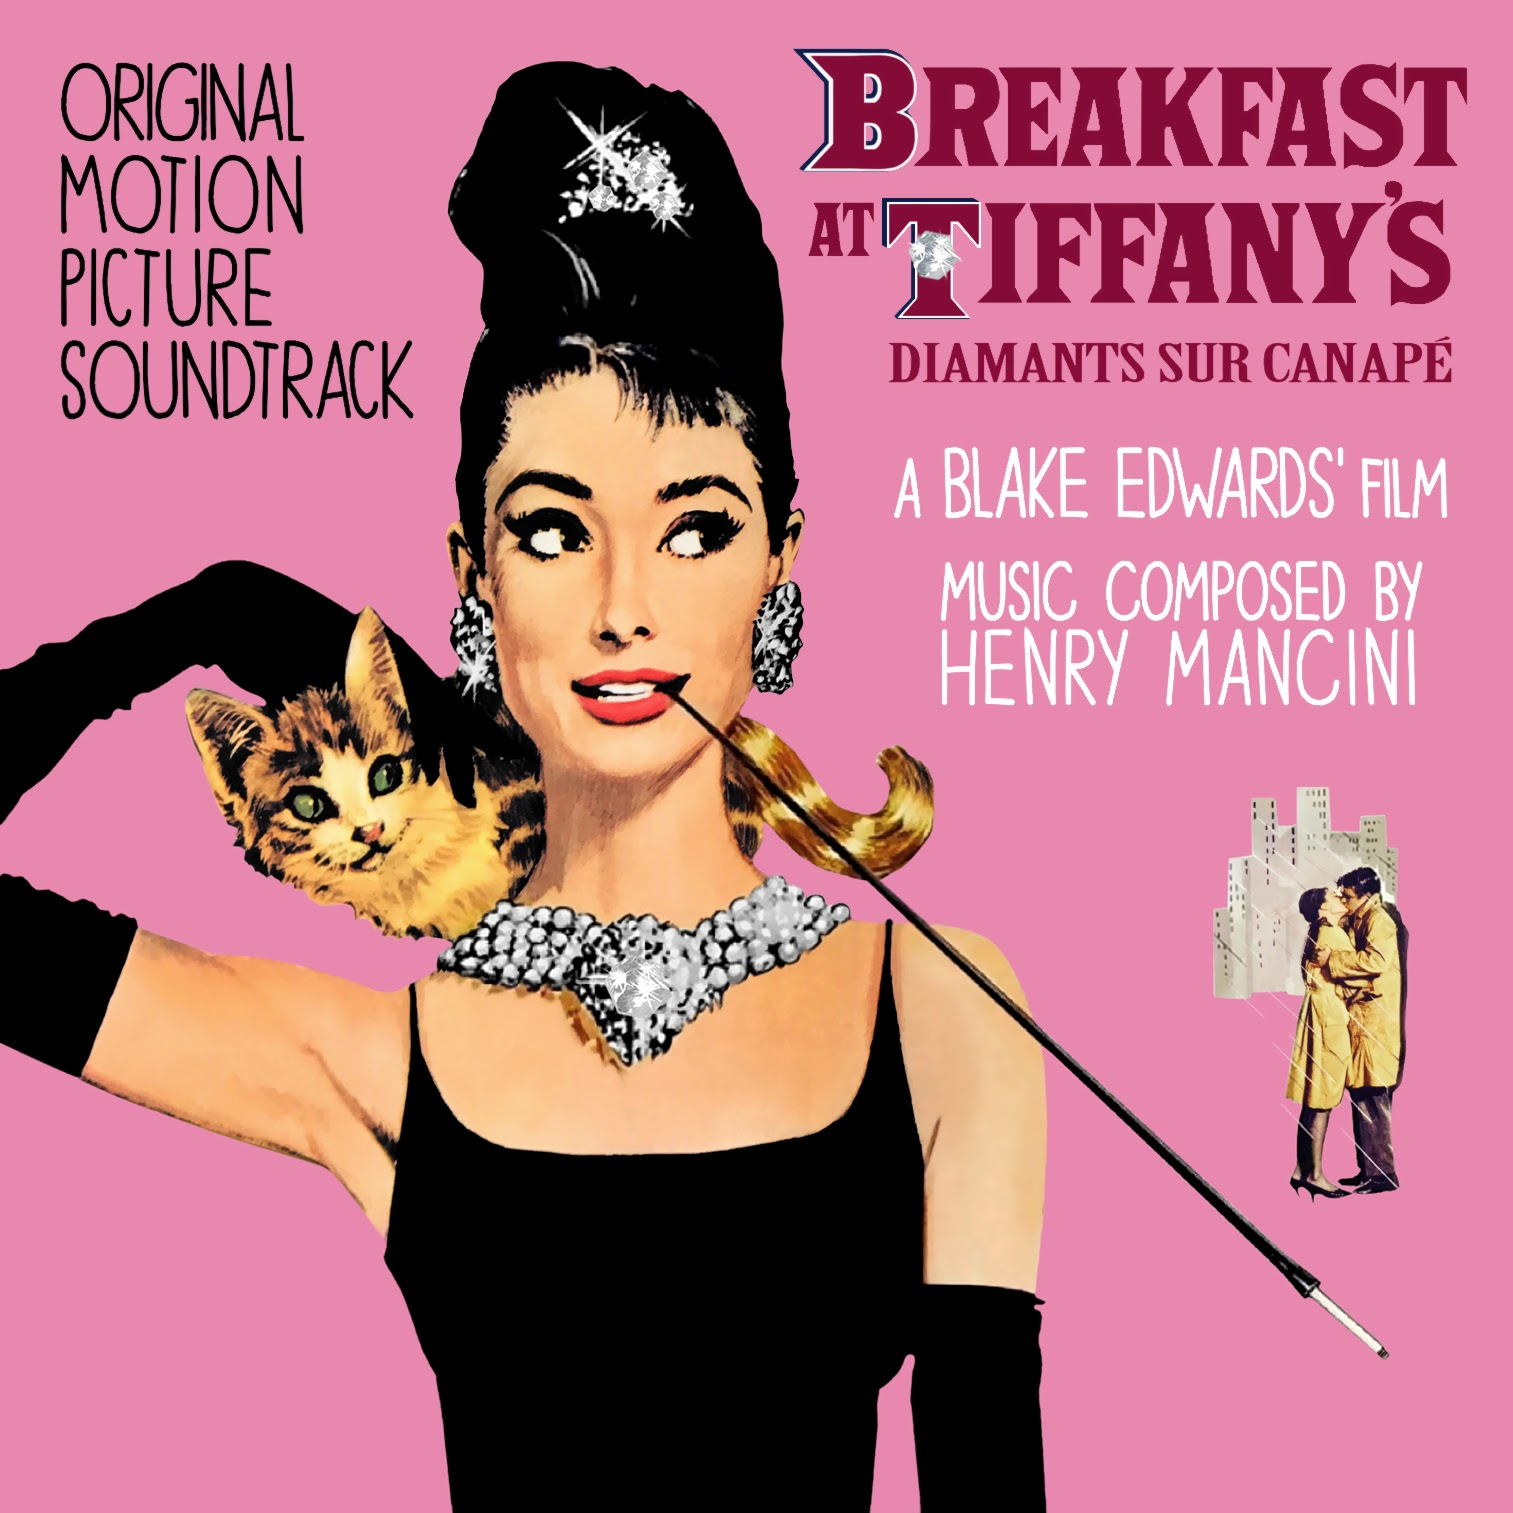 Album Artist: Henry  Mancini / Album Title: Breakfast at Tiffany's – Original Motion Picture Soundtrack (Music Composed by Henry  Mancini) [Customized Album Art]